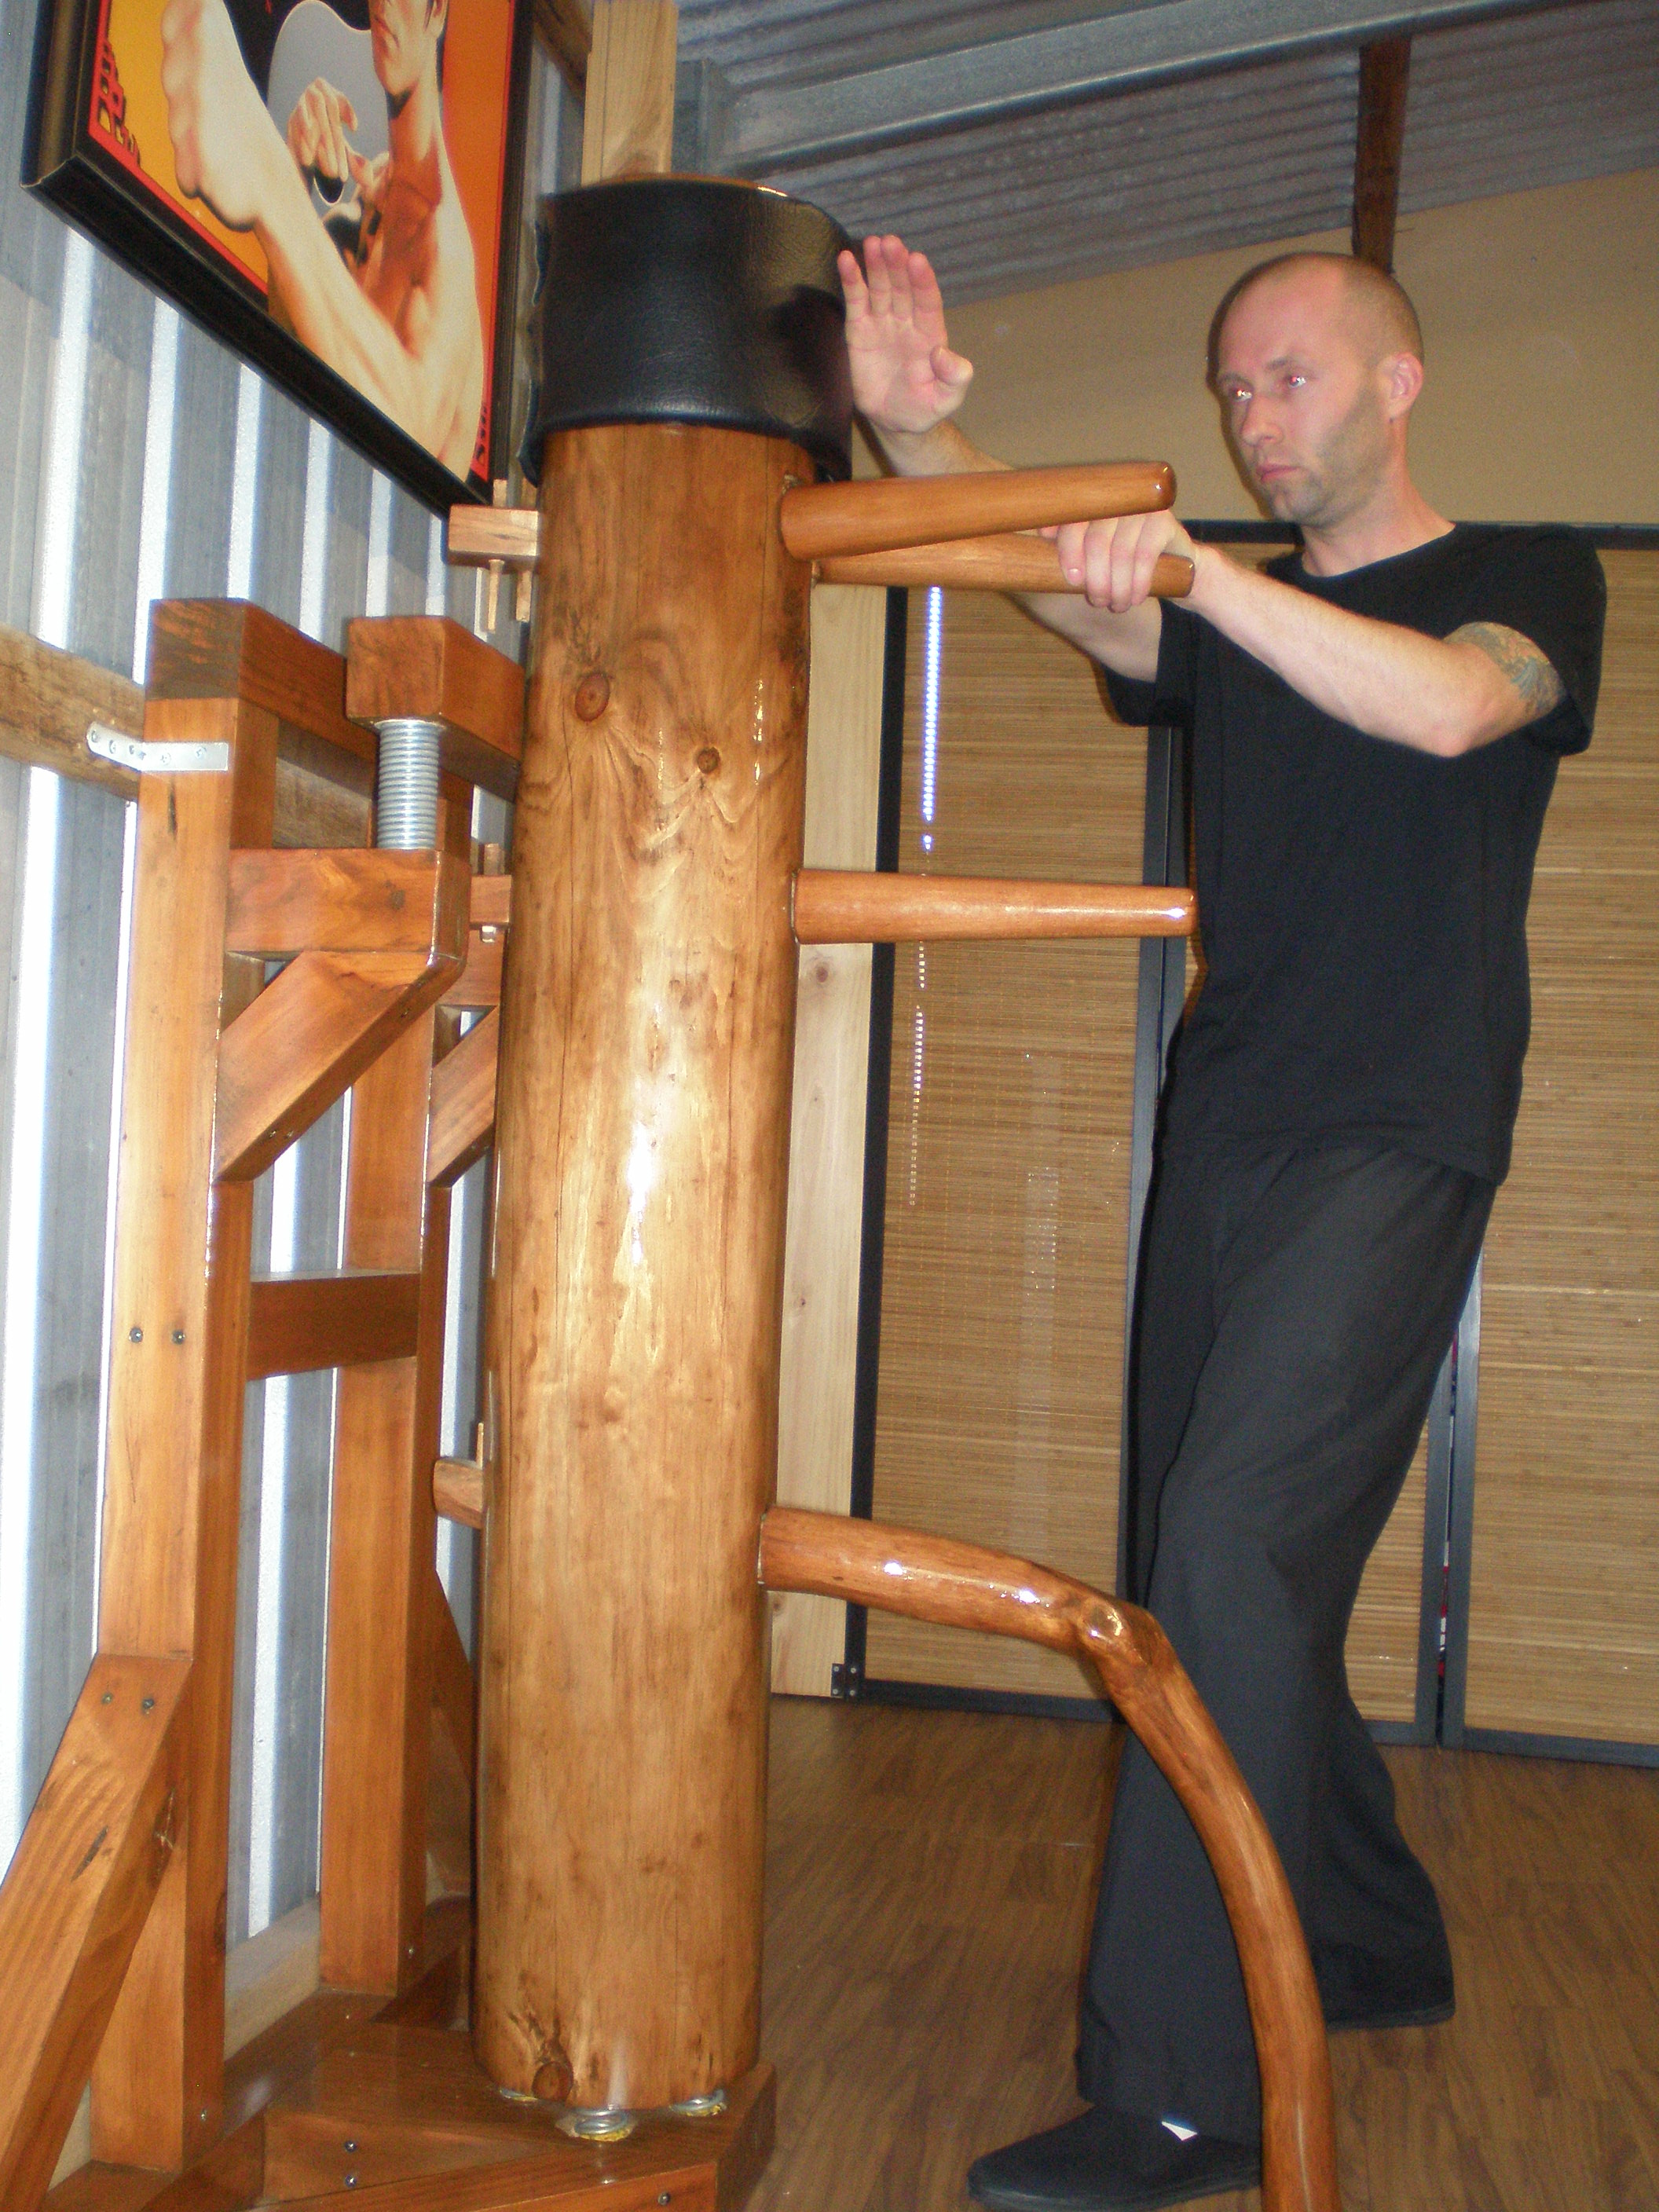 Review - Everything Wing Chun Dummy Pads - Everything Wing